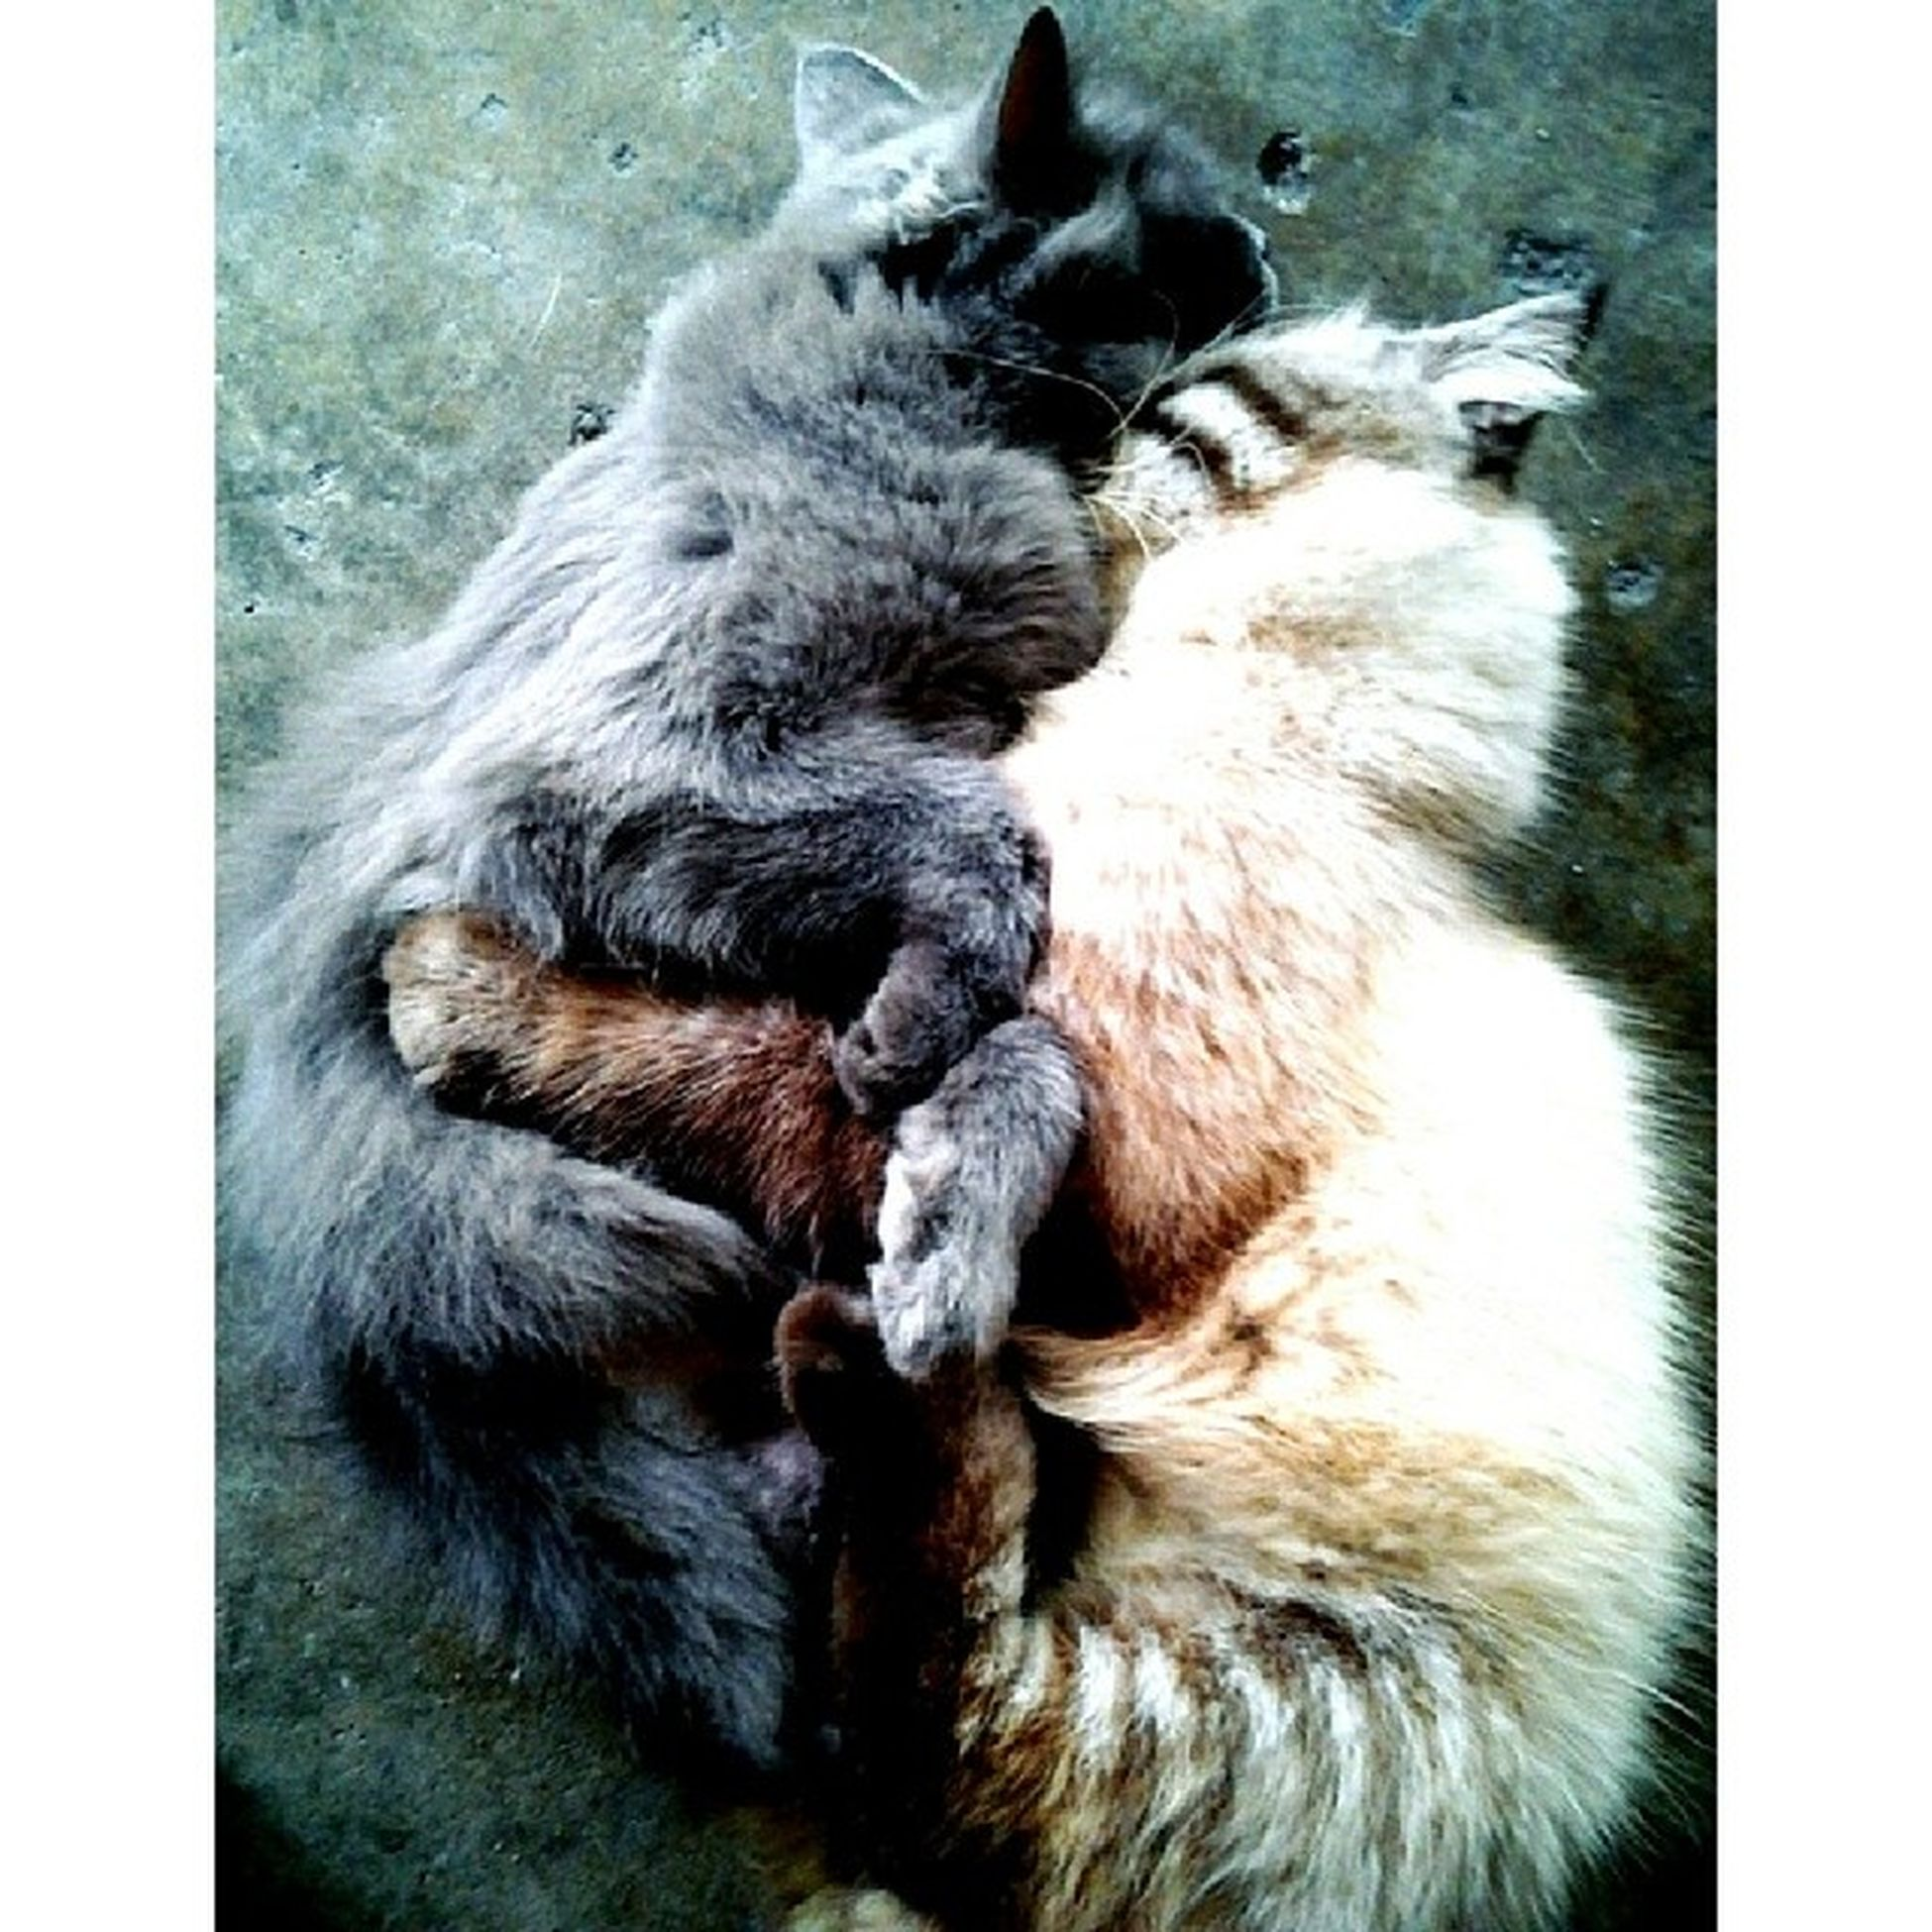 Didi & Diandra. The making of LOVE ^_^ Can you name the position? LOL Aristacats Kucing Mengawan Love lovecats igcats igclubcats igmalaysian catsoftheday catsofinstagram potd meow